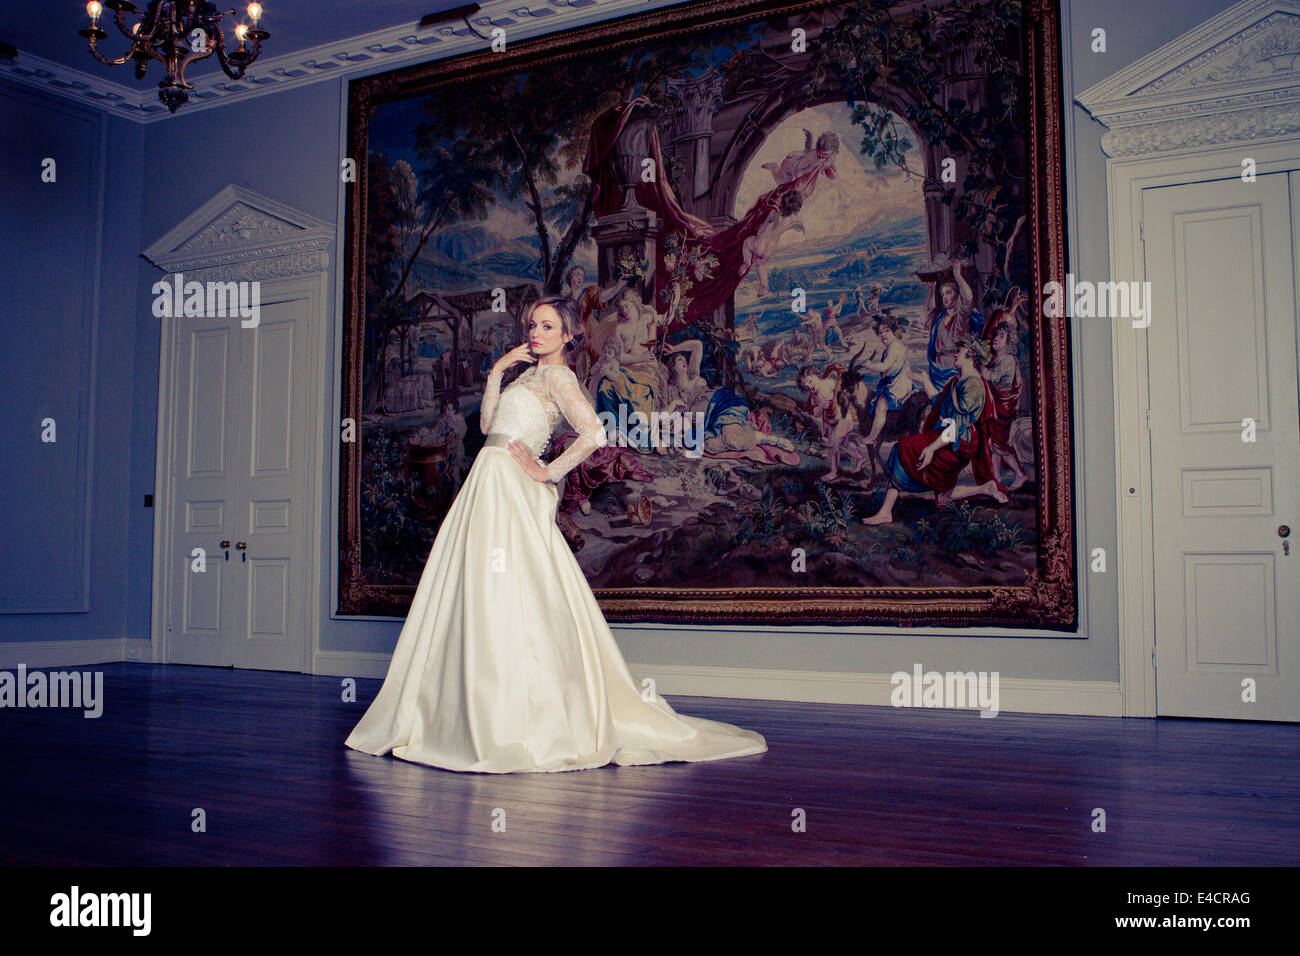 Bride stands with hand on hip against huge painting, Dorset, England - Stock Image